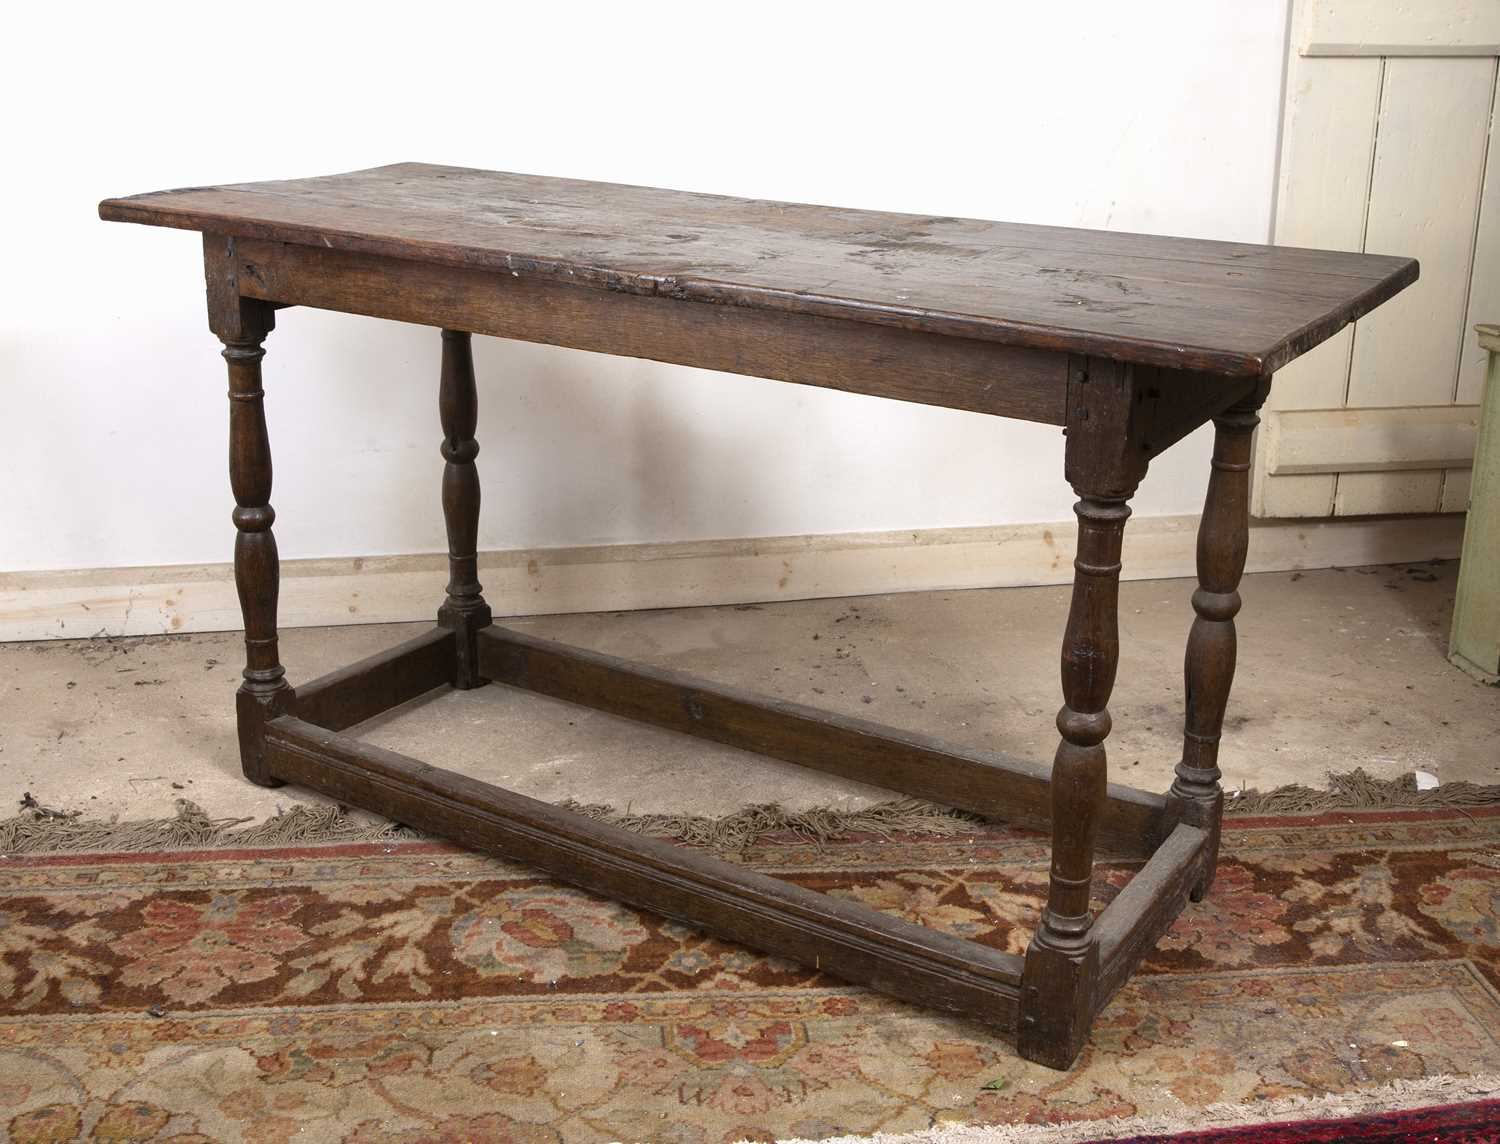 An 18th century oak rectangular side table, on baluster turned legs united by stretchers, 125cm - Image 2 of 4